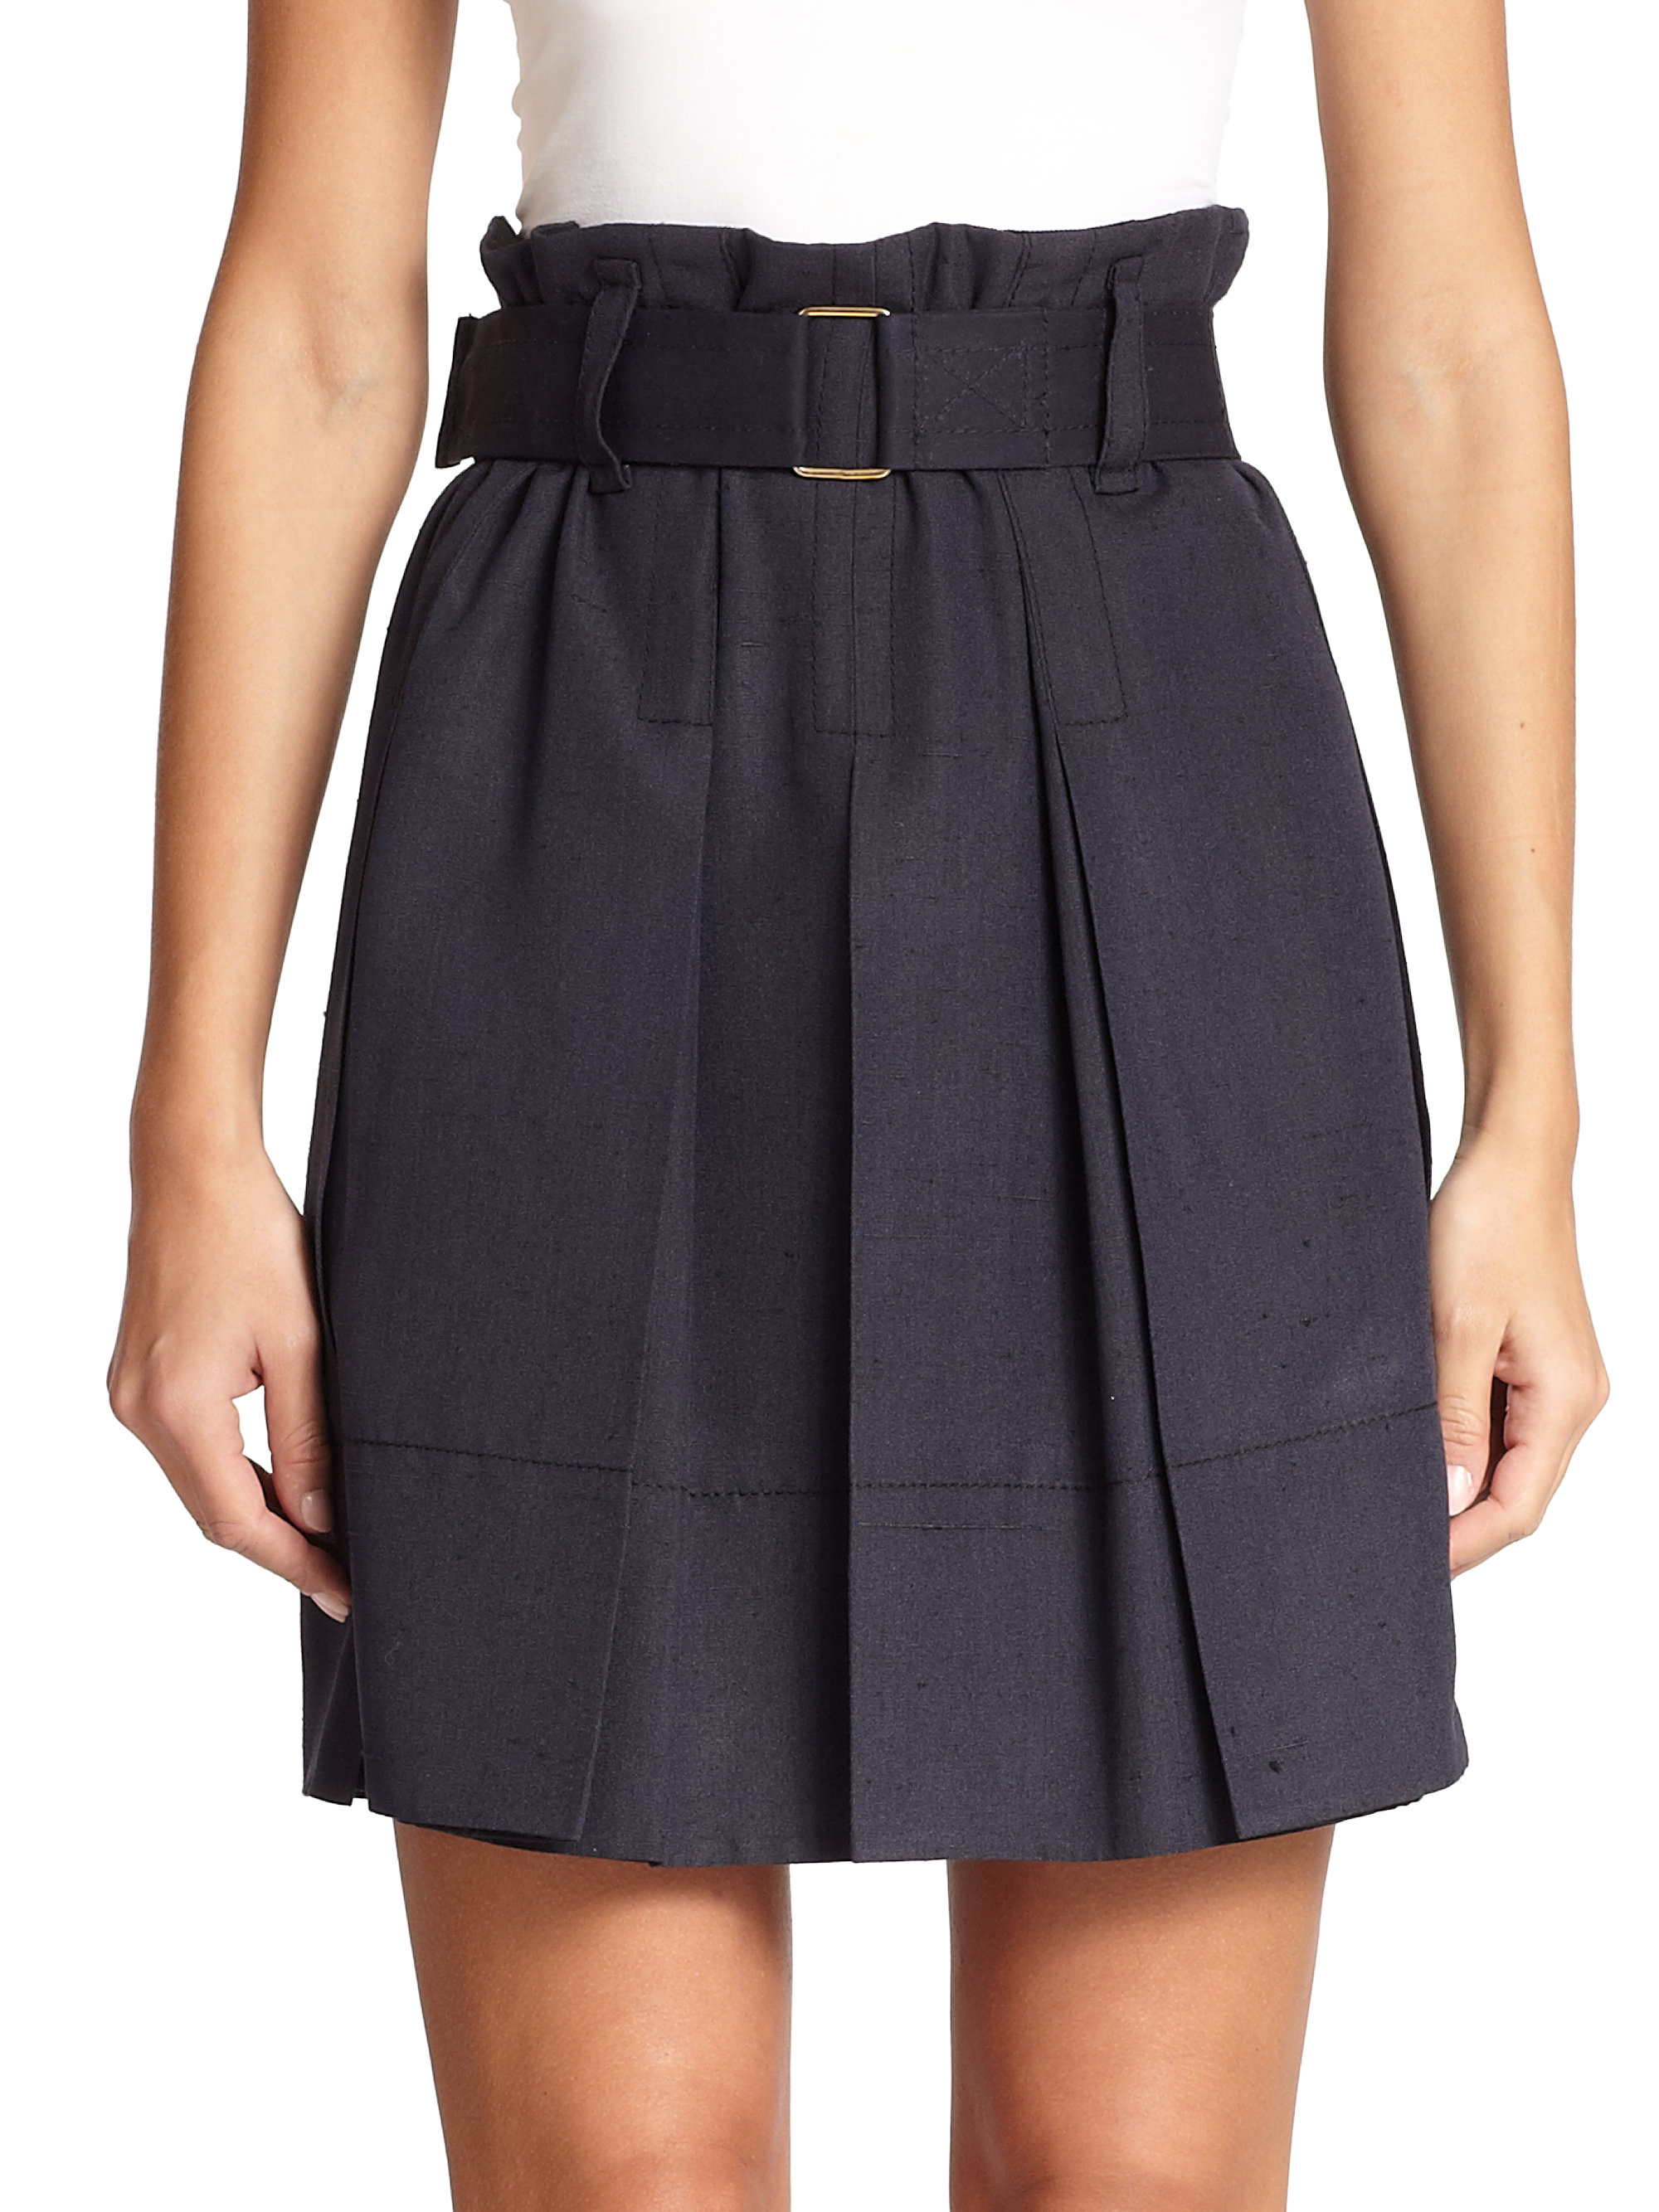 Marc jacobs Pleated High-waisted Skirt in Blue | Lyst